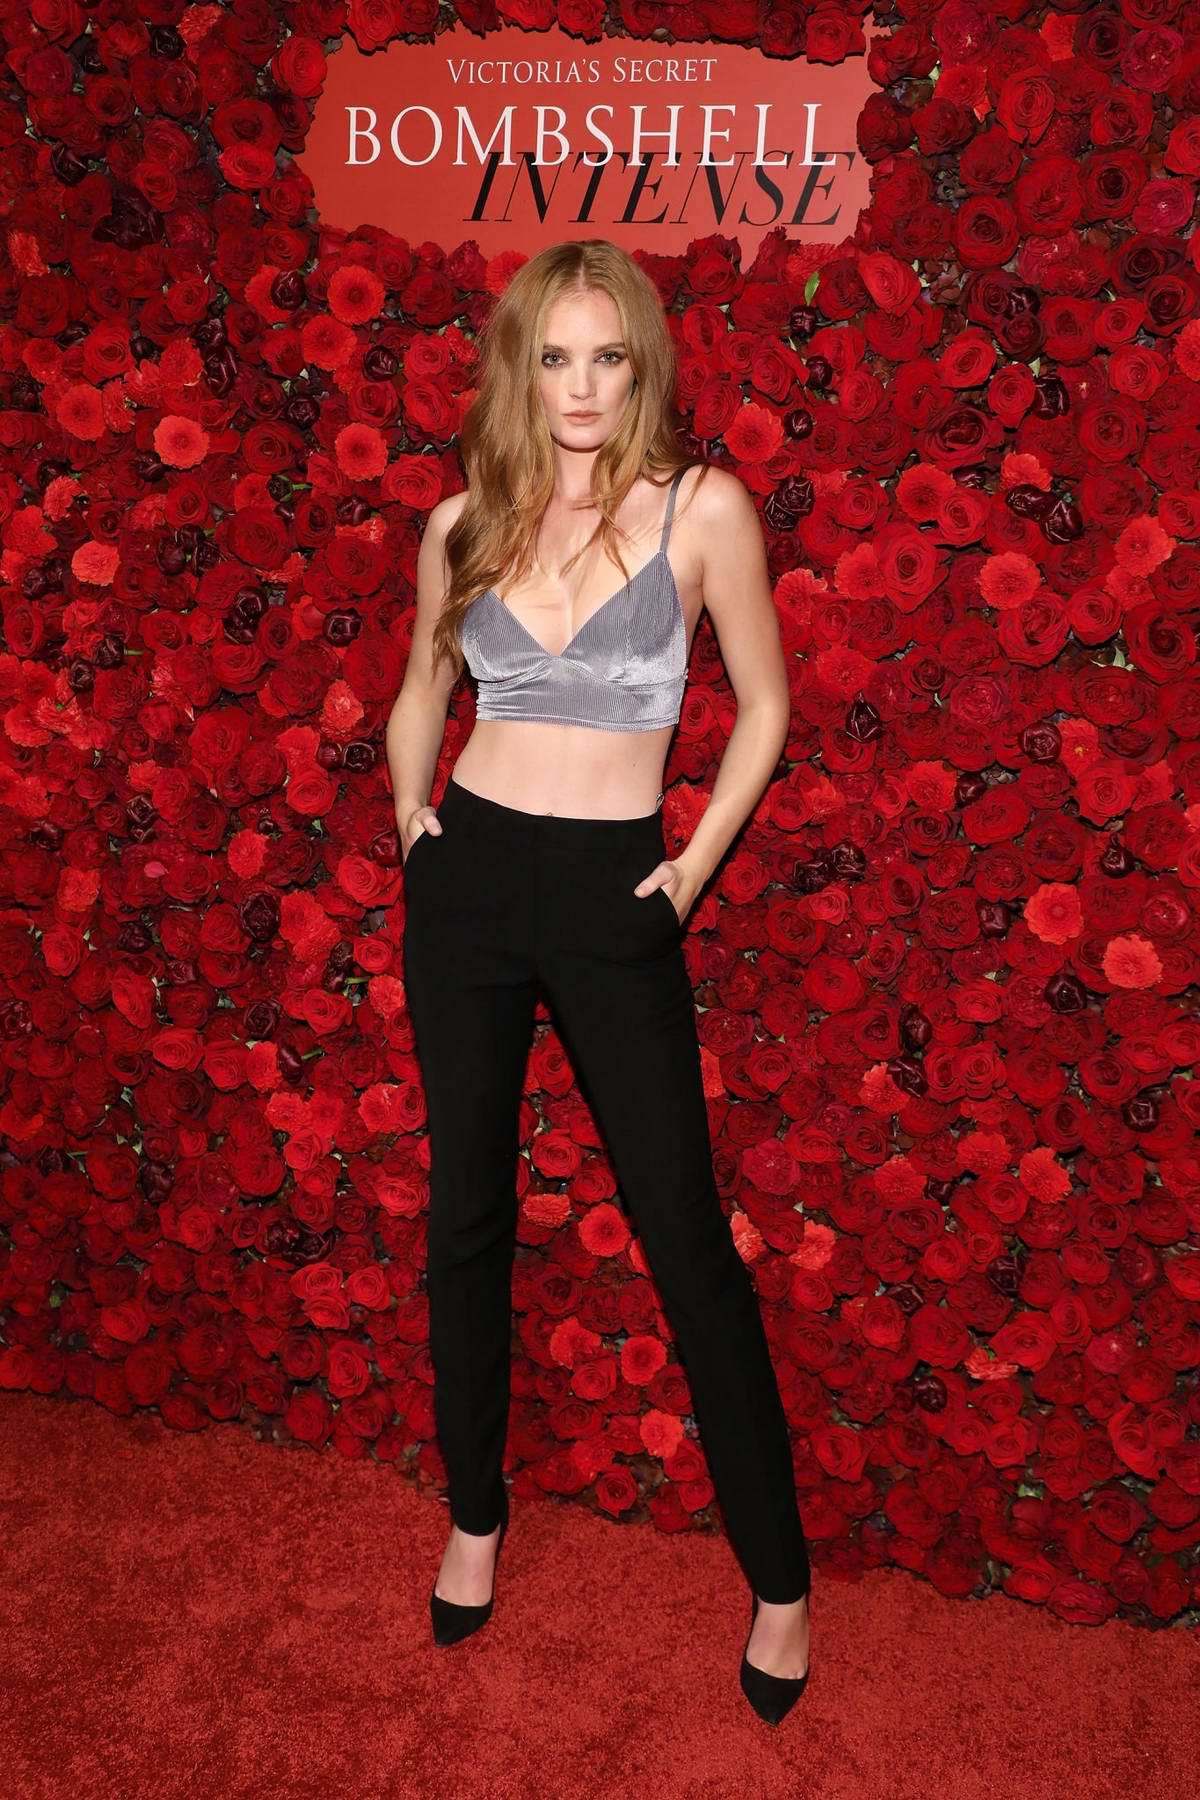 Alexina Graham attends Victoria's Secret Bombshell Intense Launch Party in New York City